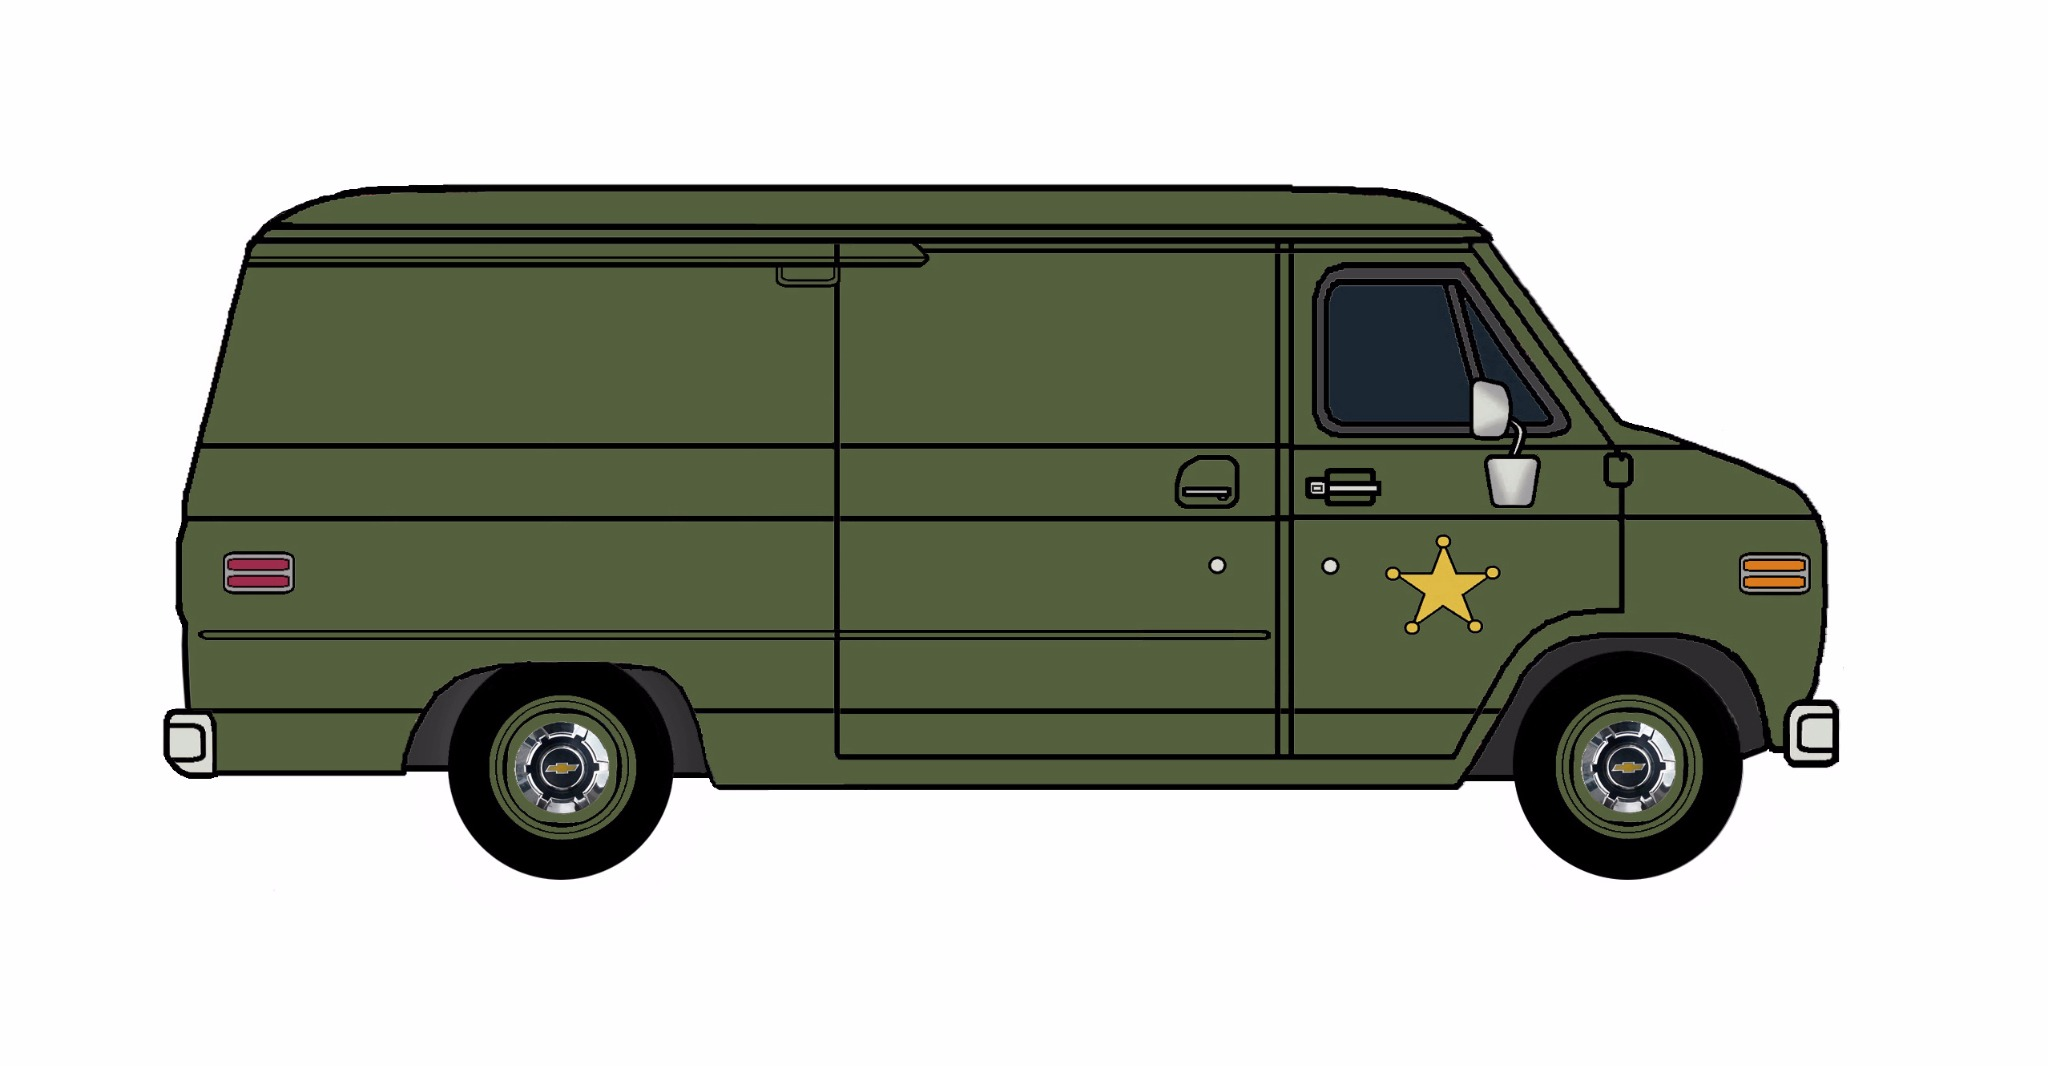 1977 Chevy G20 Police Van ARMY GREEN